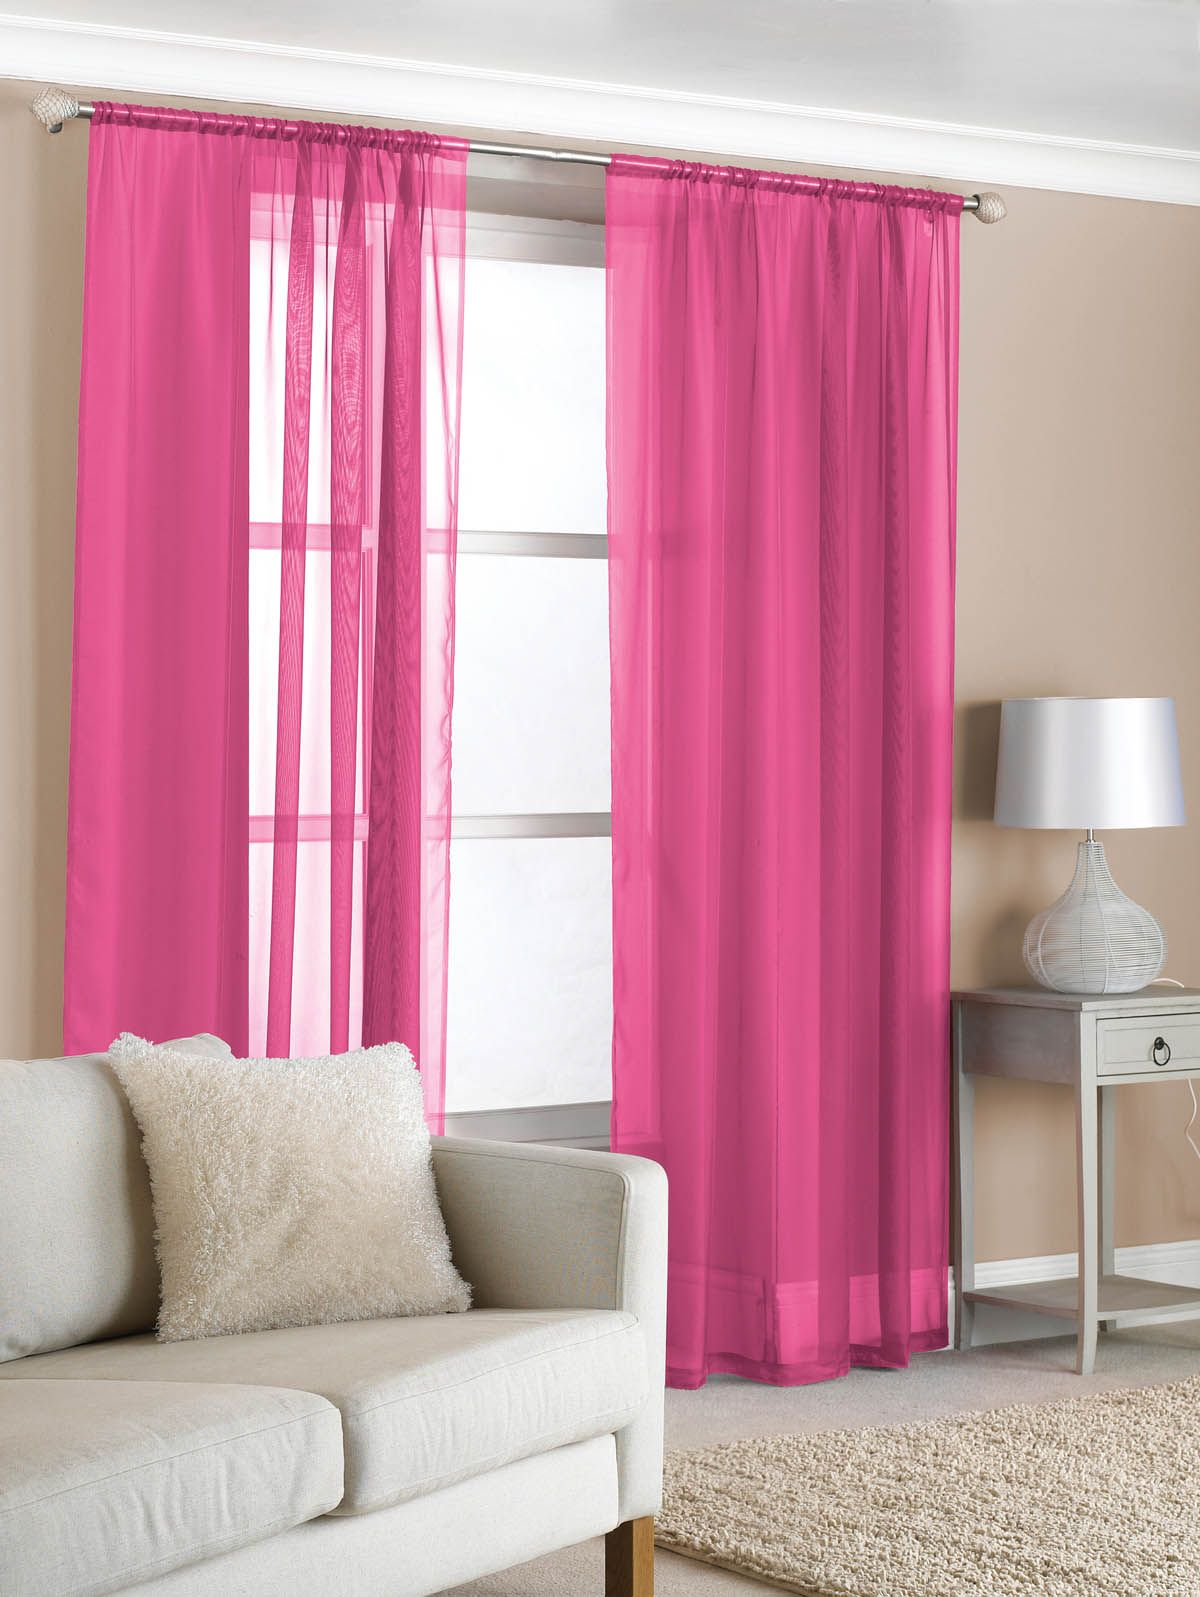 Sweet Pink Bedroom Curtains For Girls Accessories Captivating Curtain In Wonderful With White Shade Table Lamp And Comfy Sofa